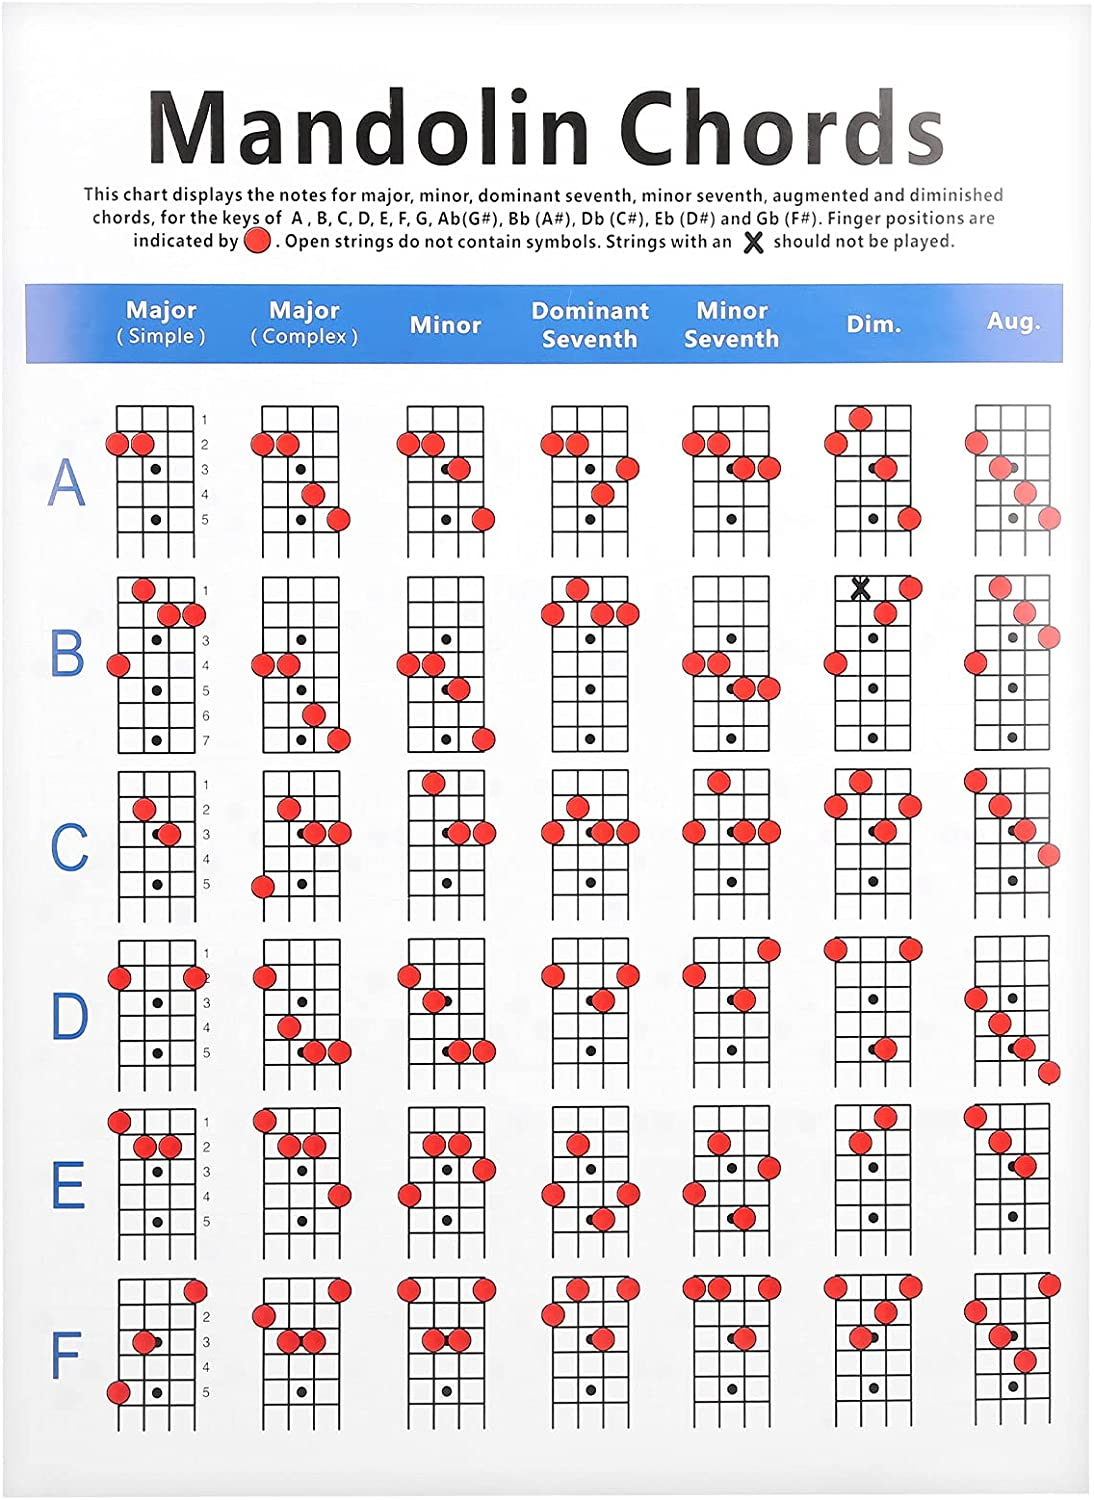 Mandolin Chords   Practical Mandolin Chord Chart Fretboard Notes Coated  Paper for Beginners Adult Kid